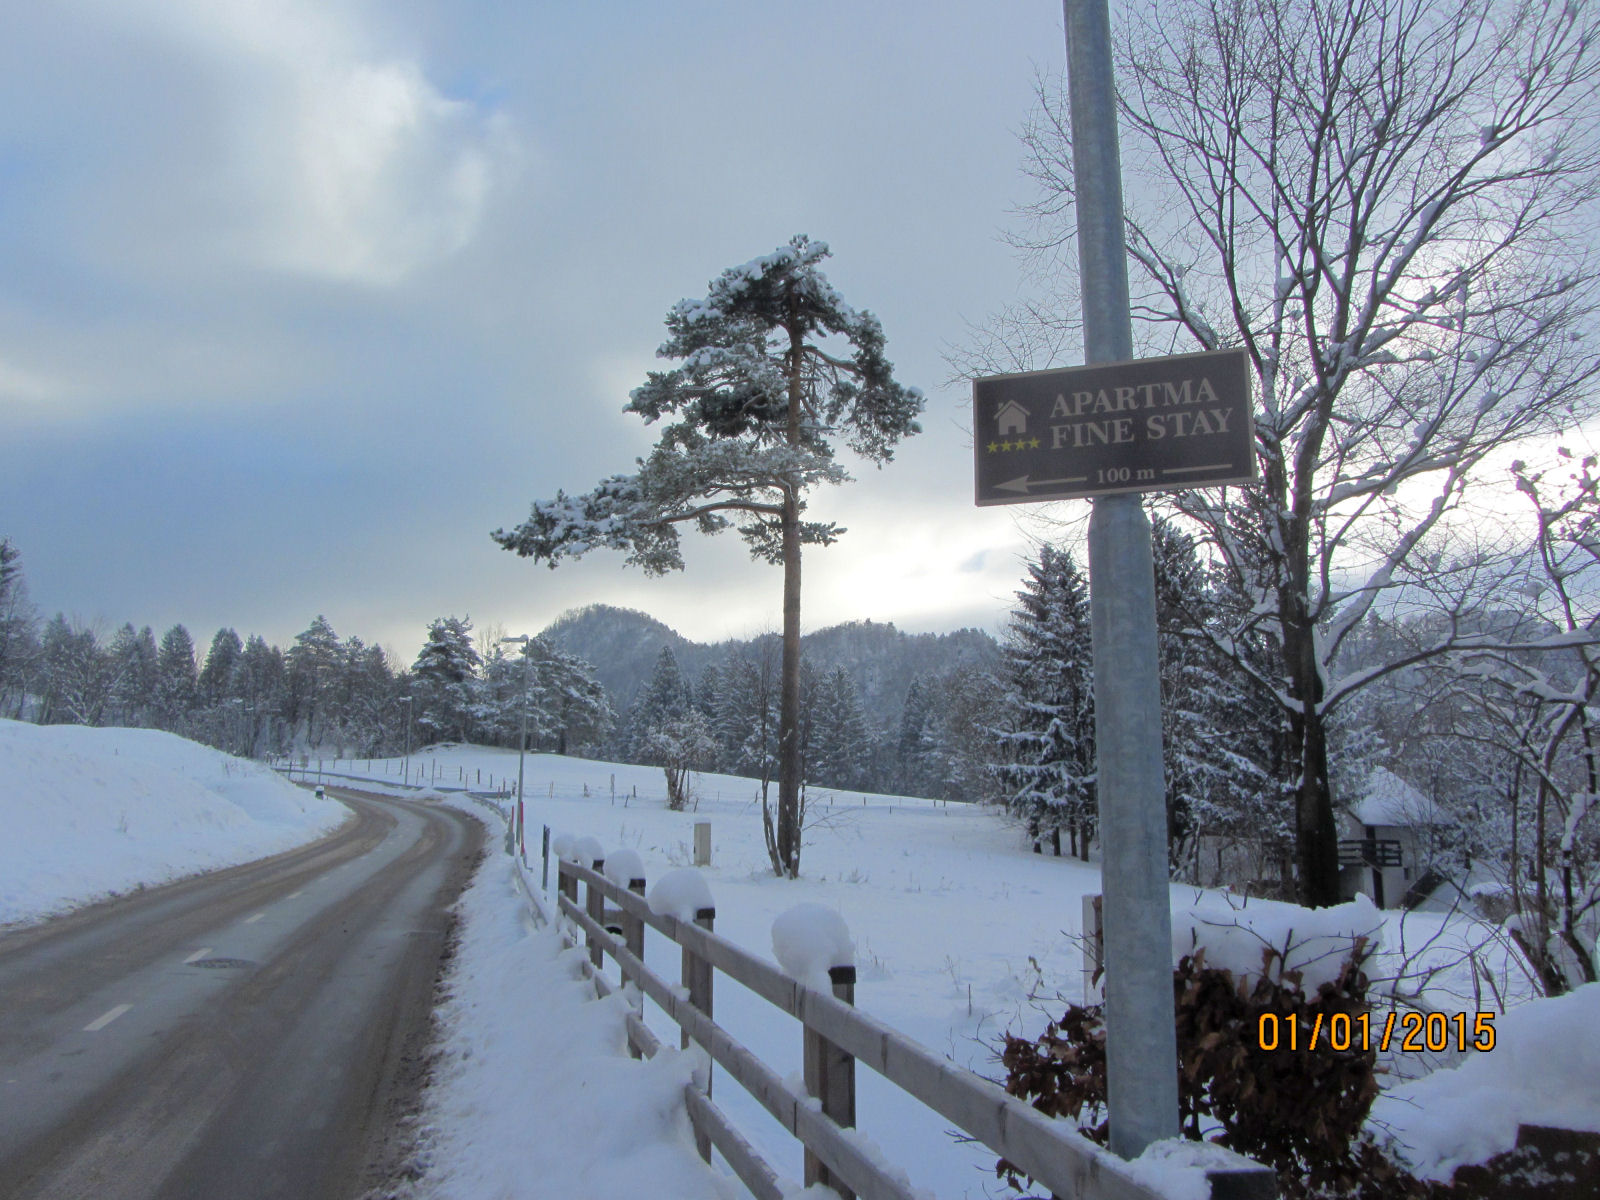 Fine Stay apartment road sign in winter